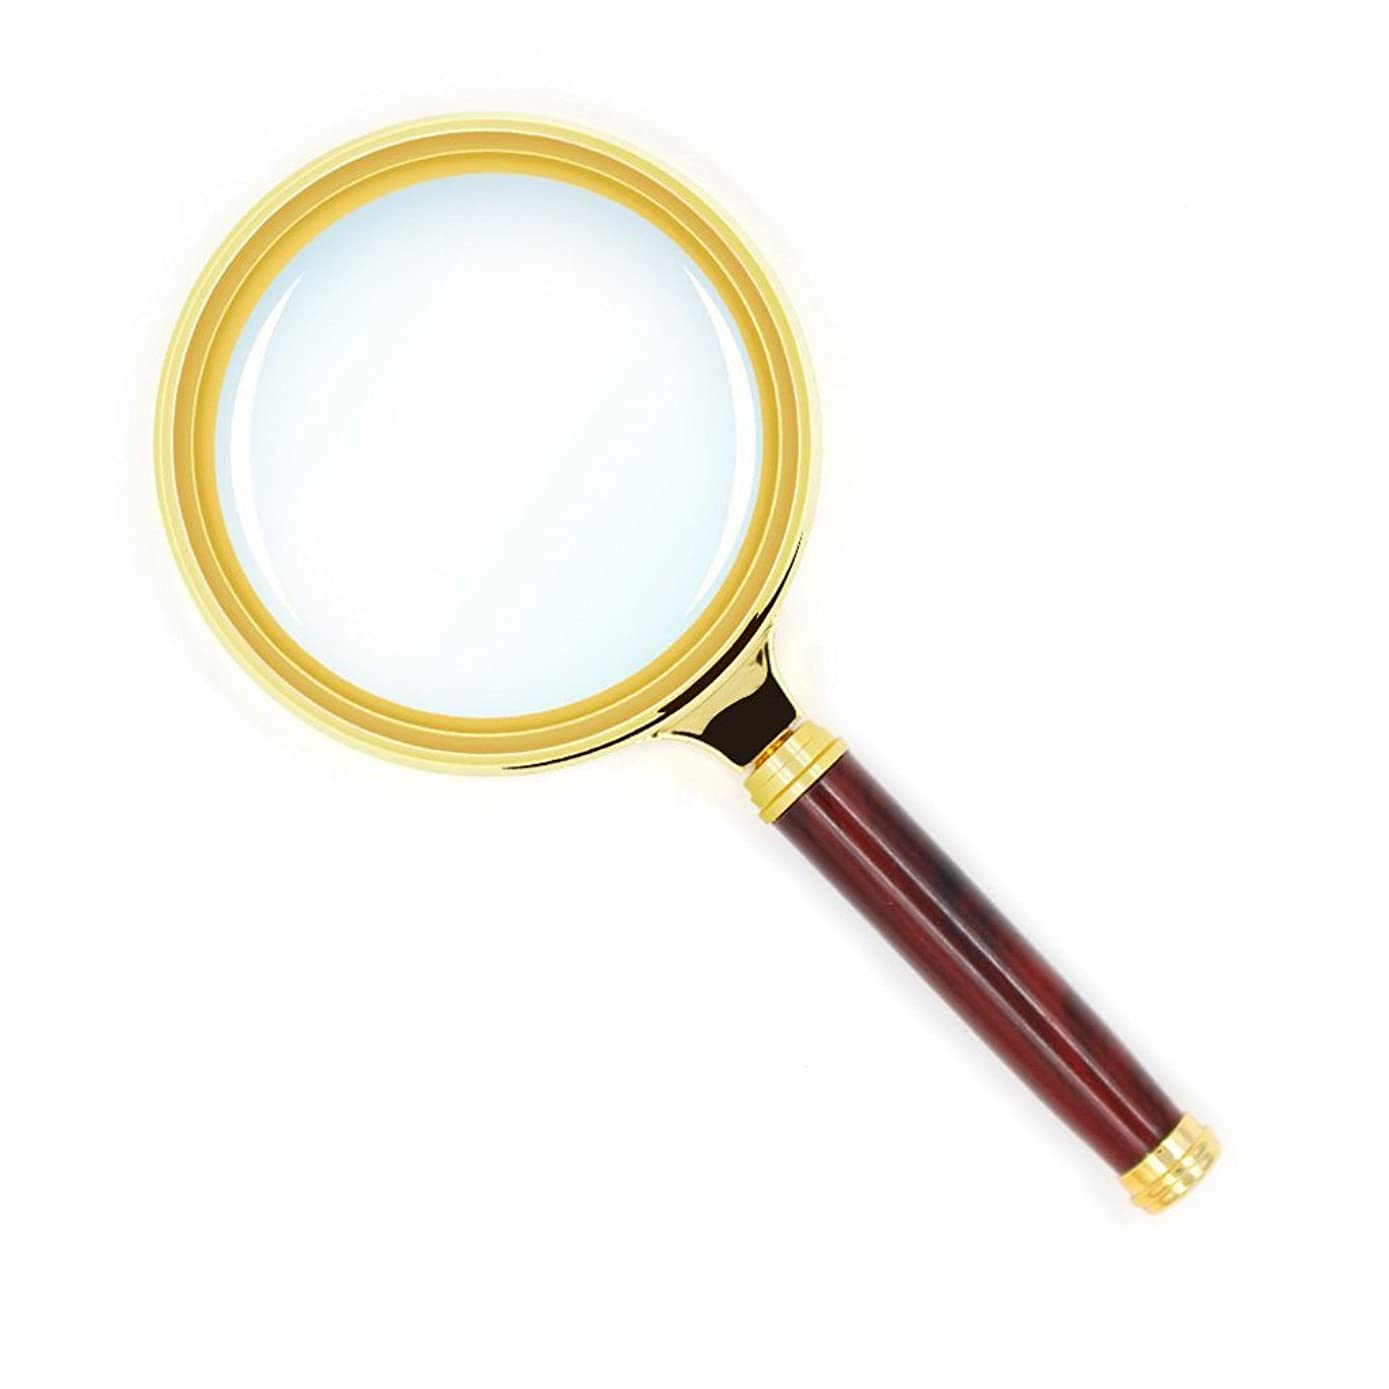 XHHWZB 10X Handheld Magnifier, Reading Magnifier Loupe Glasses 10X With Rosewood Handle for Book and Newspaper Reading